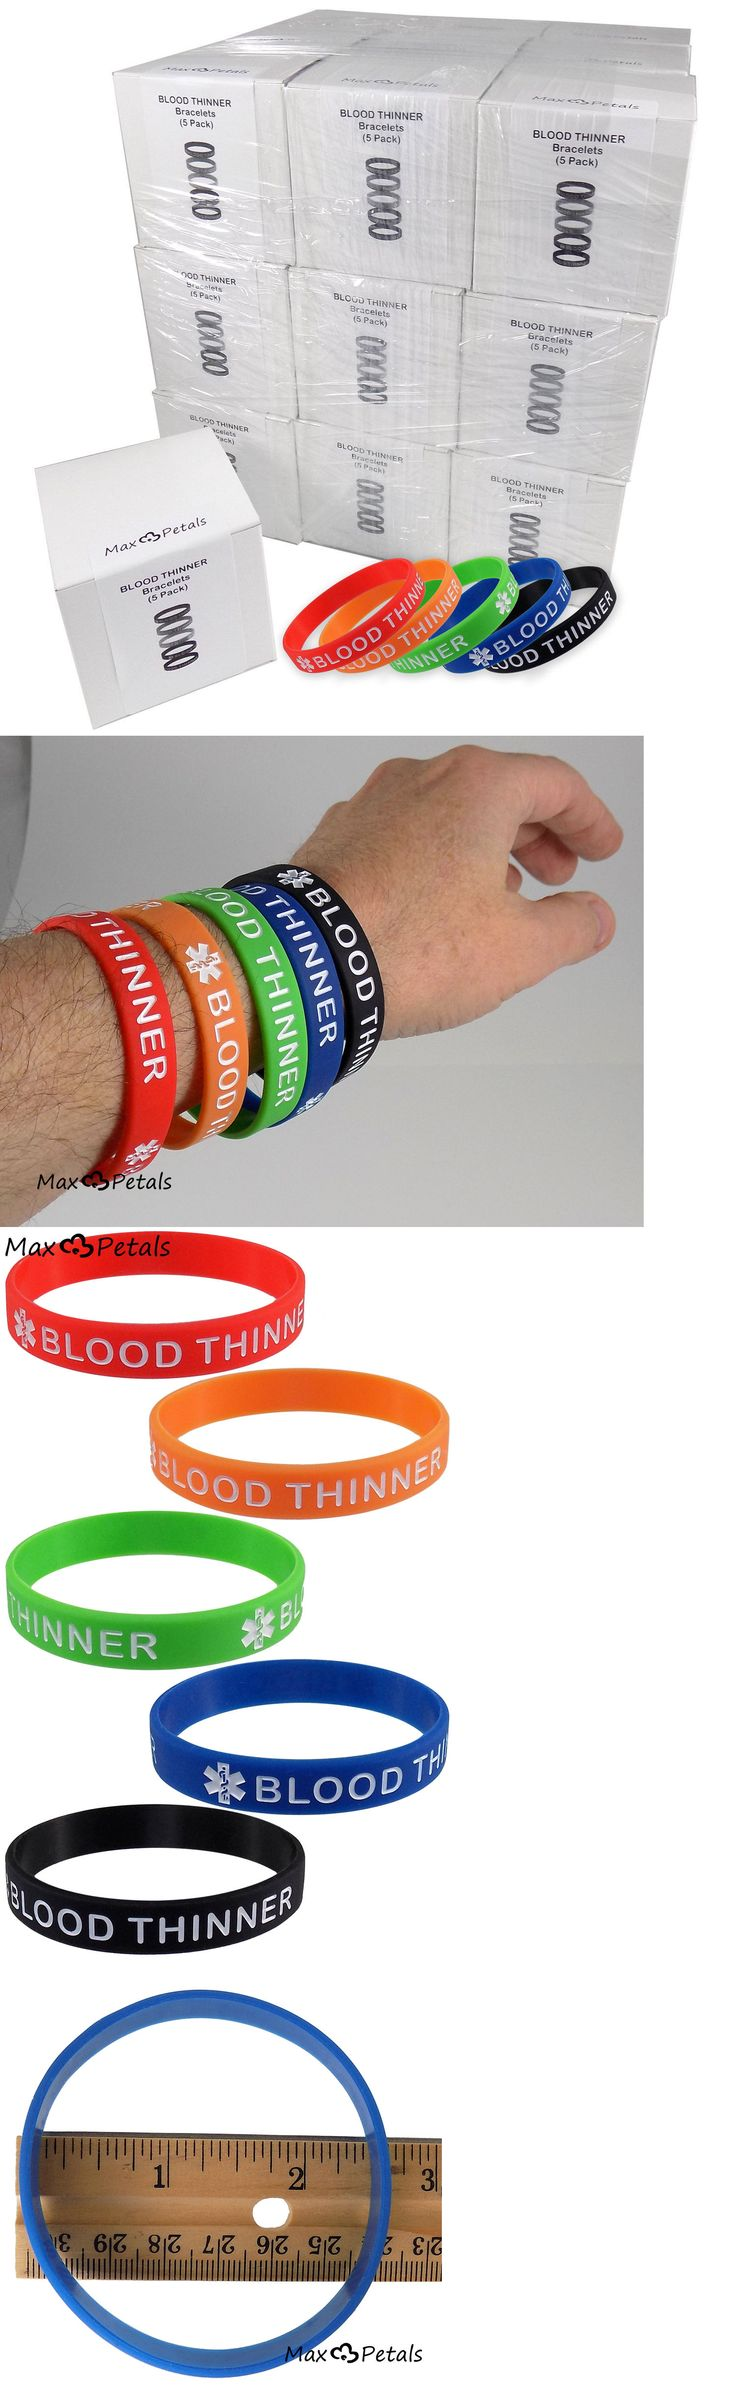 Wristbands 112603: Blood Thinner Silicone Bracelet Wristbands Lot 27 5 Packs -> BUY IT NOW ONLY: $189.95 on eBay!